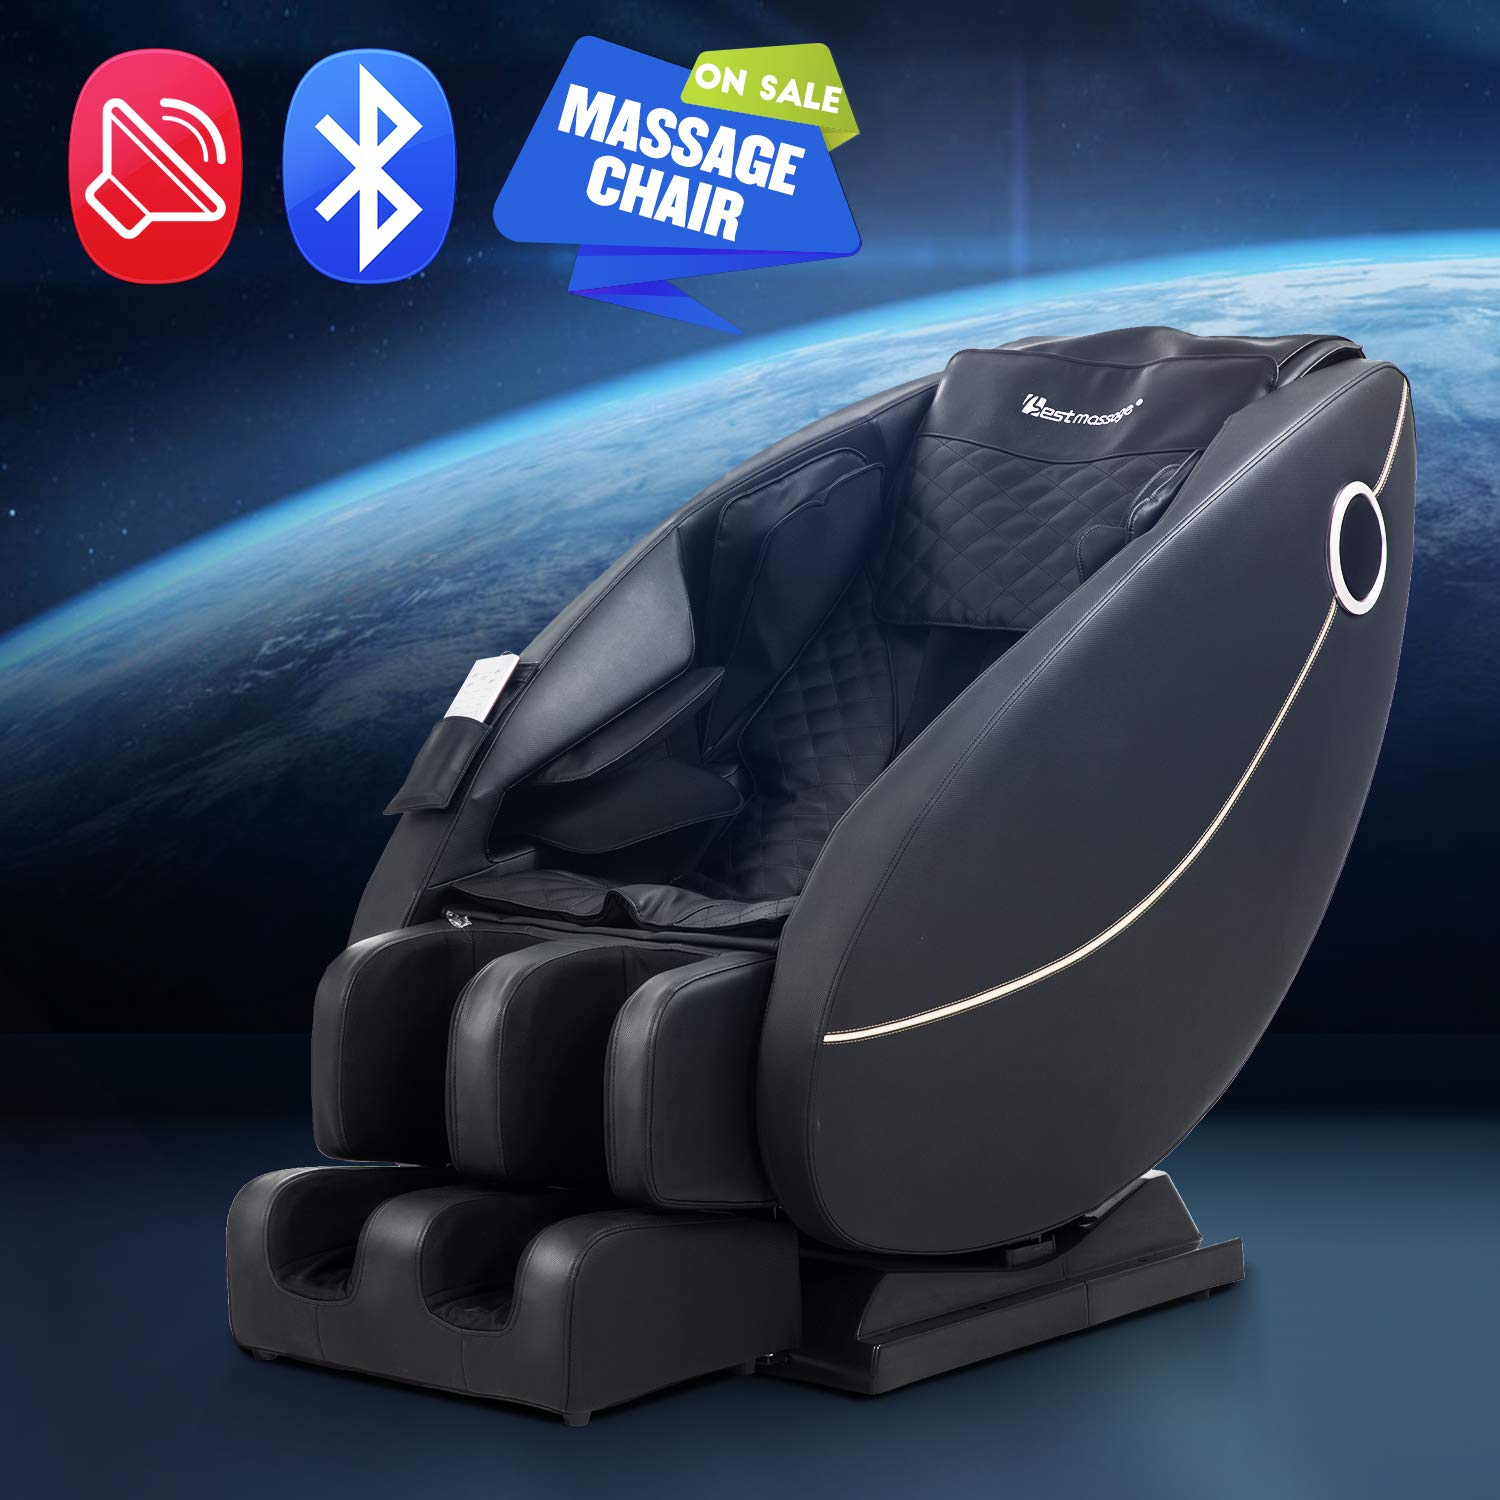 Bestmassage Zero Gravity Full Body Electric Shiatsu Massage Chair Recliner With Built In Heat Foot Roller Air Massage System Lss Track Stretch